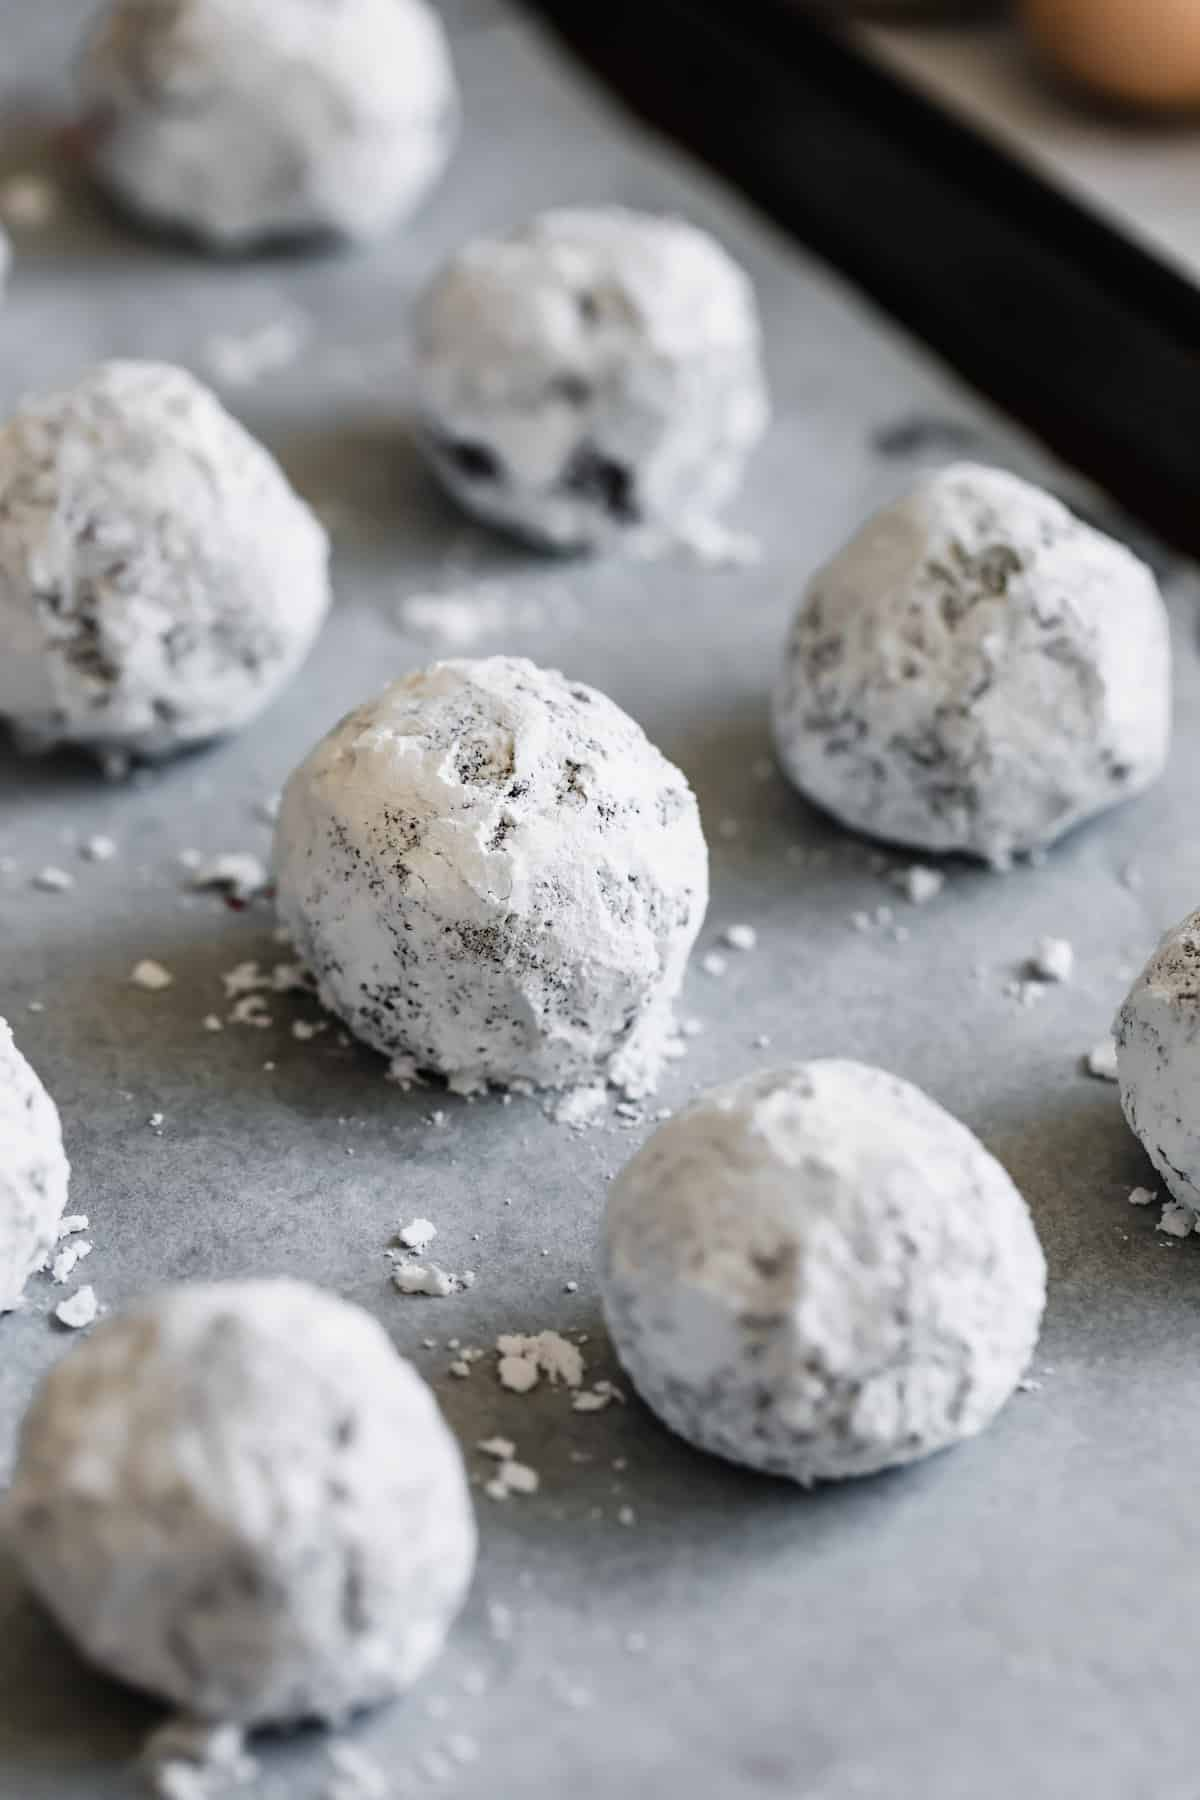 A Parchment-Lined Baking Sheet with Powdered Sugar-Dusted Balls of Dough On it